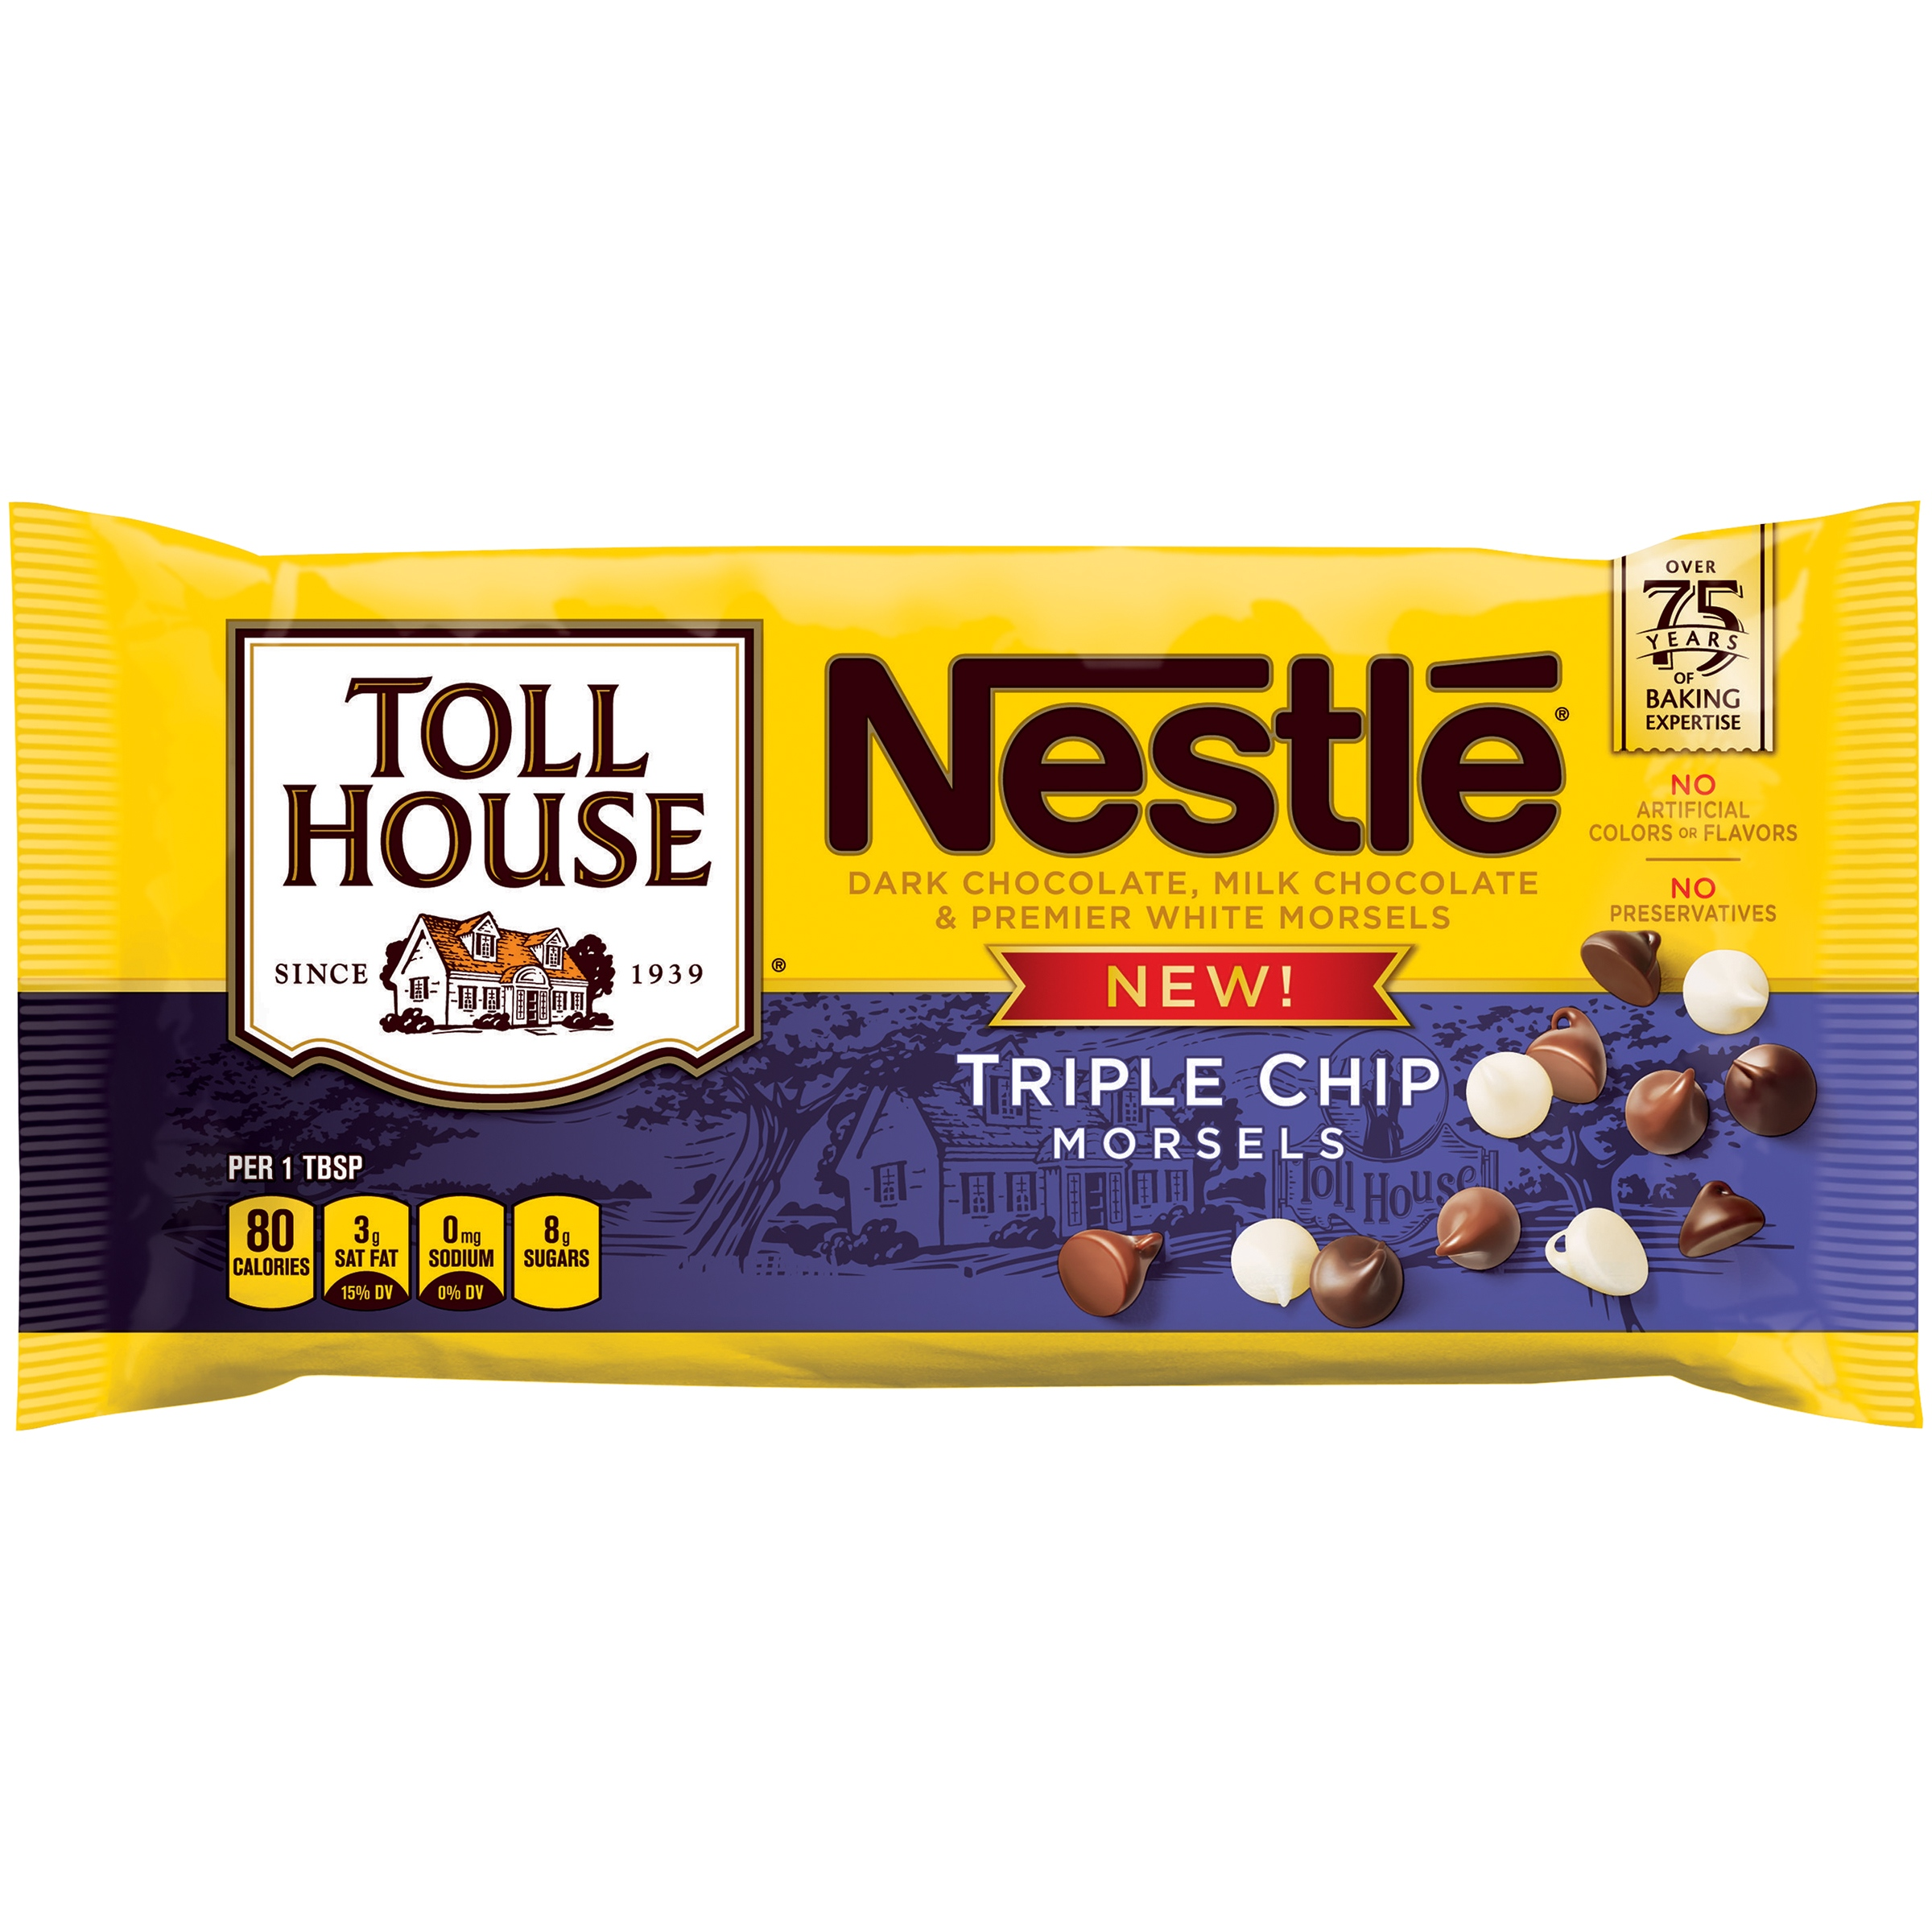 NESTLE TOLL HOUSE Triple Chip Morsels 10 oz. Bag